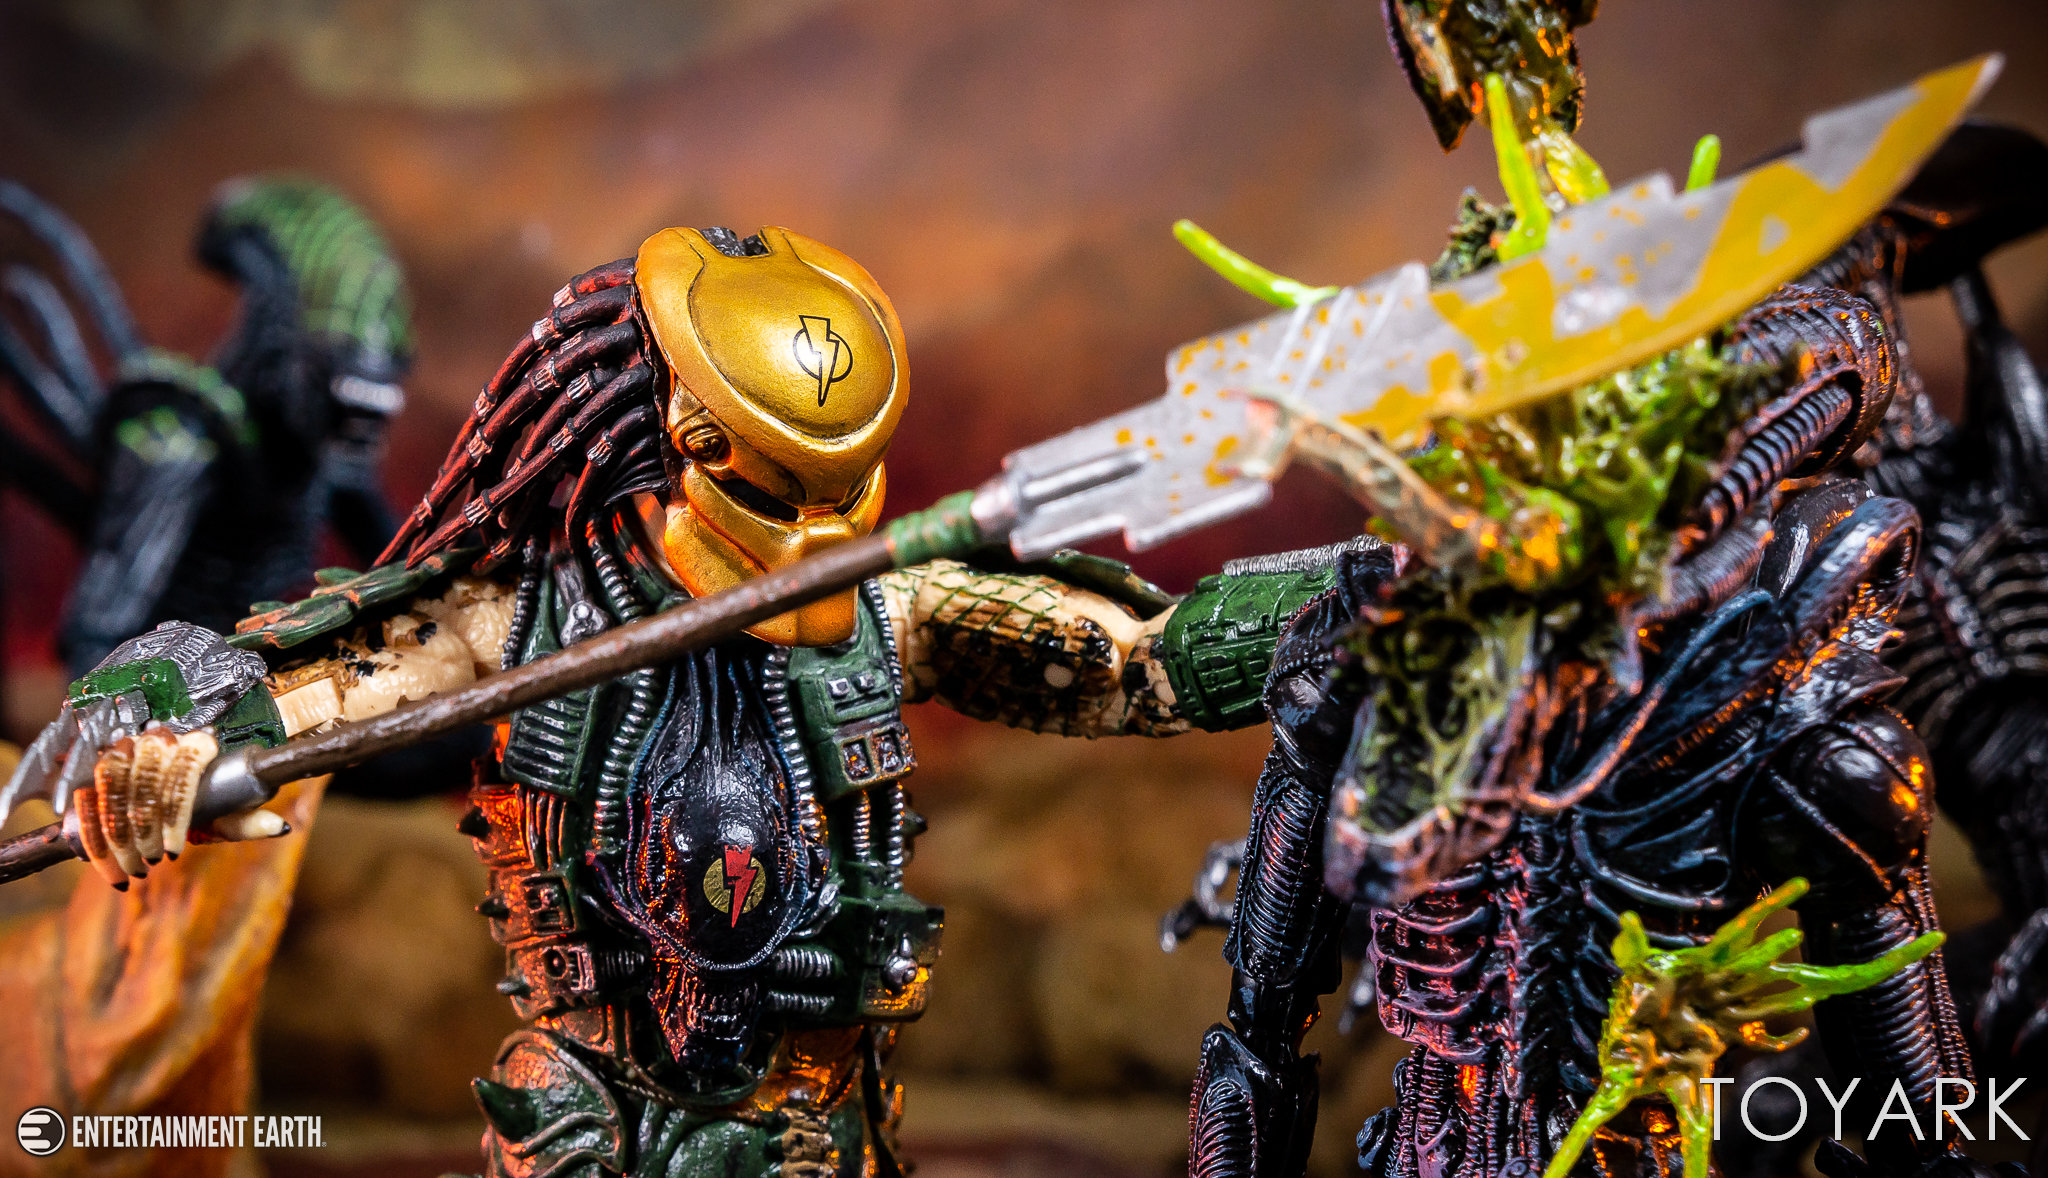 https://news.toyark.com/wp-content/uploads/sites/4/2019/01/Predator-NECA-Series-18-Figures-046.jpg